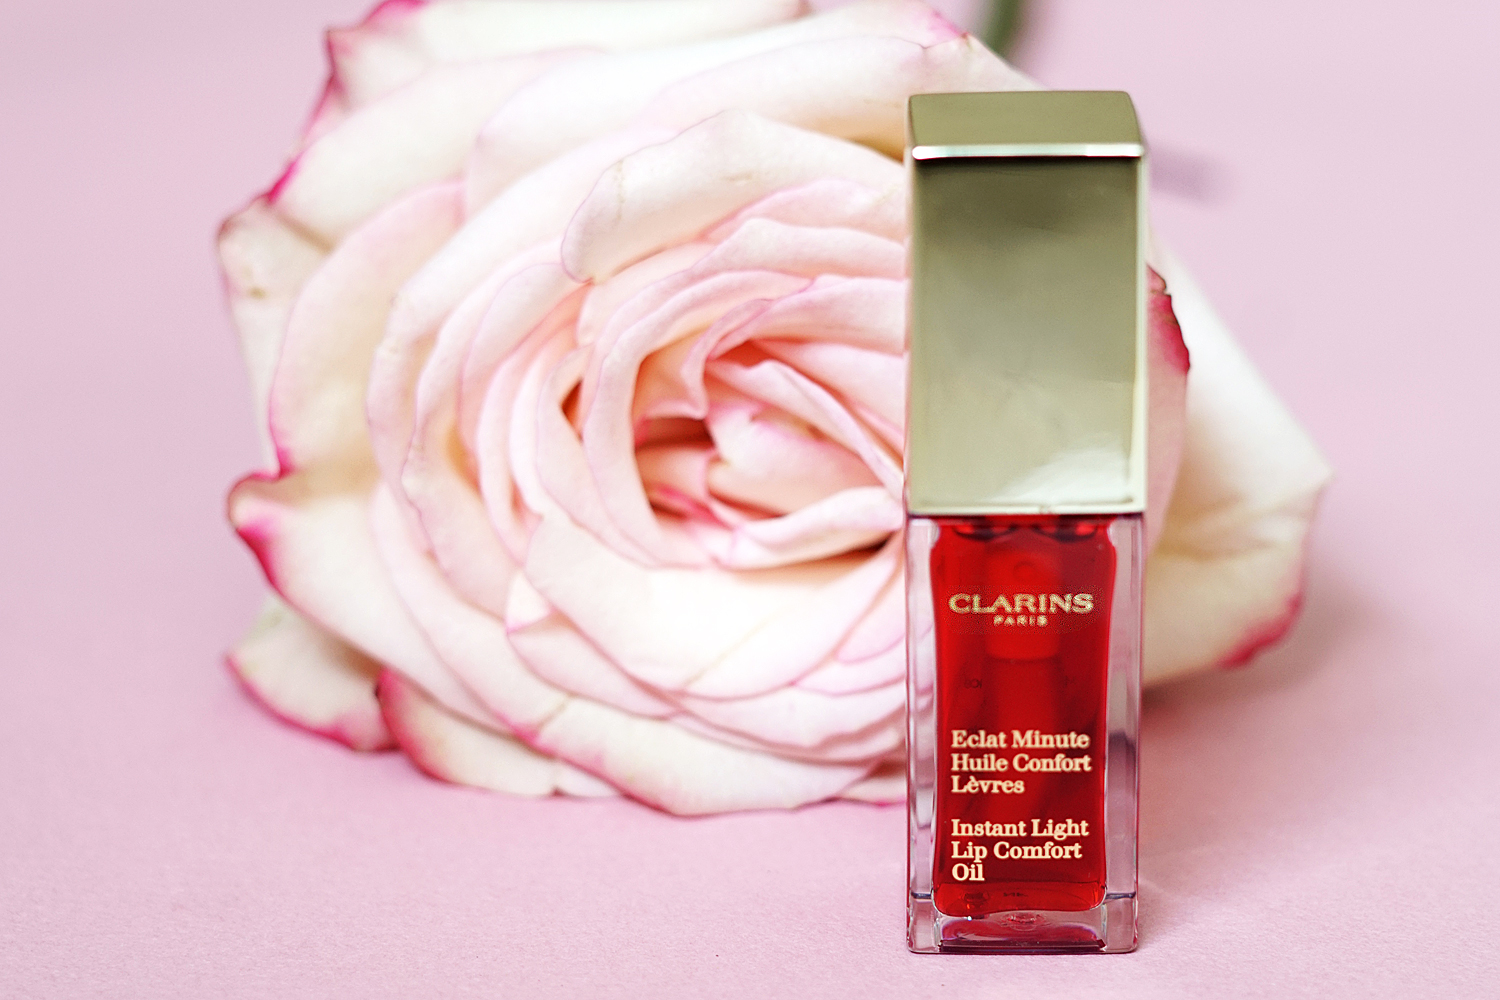 04clarins-lipstain-lipoil-lips-beauty